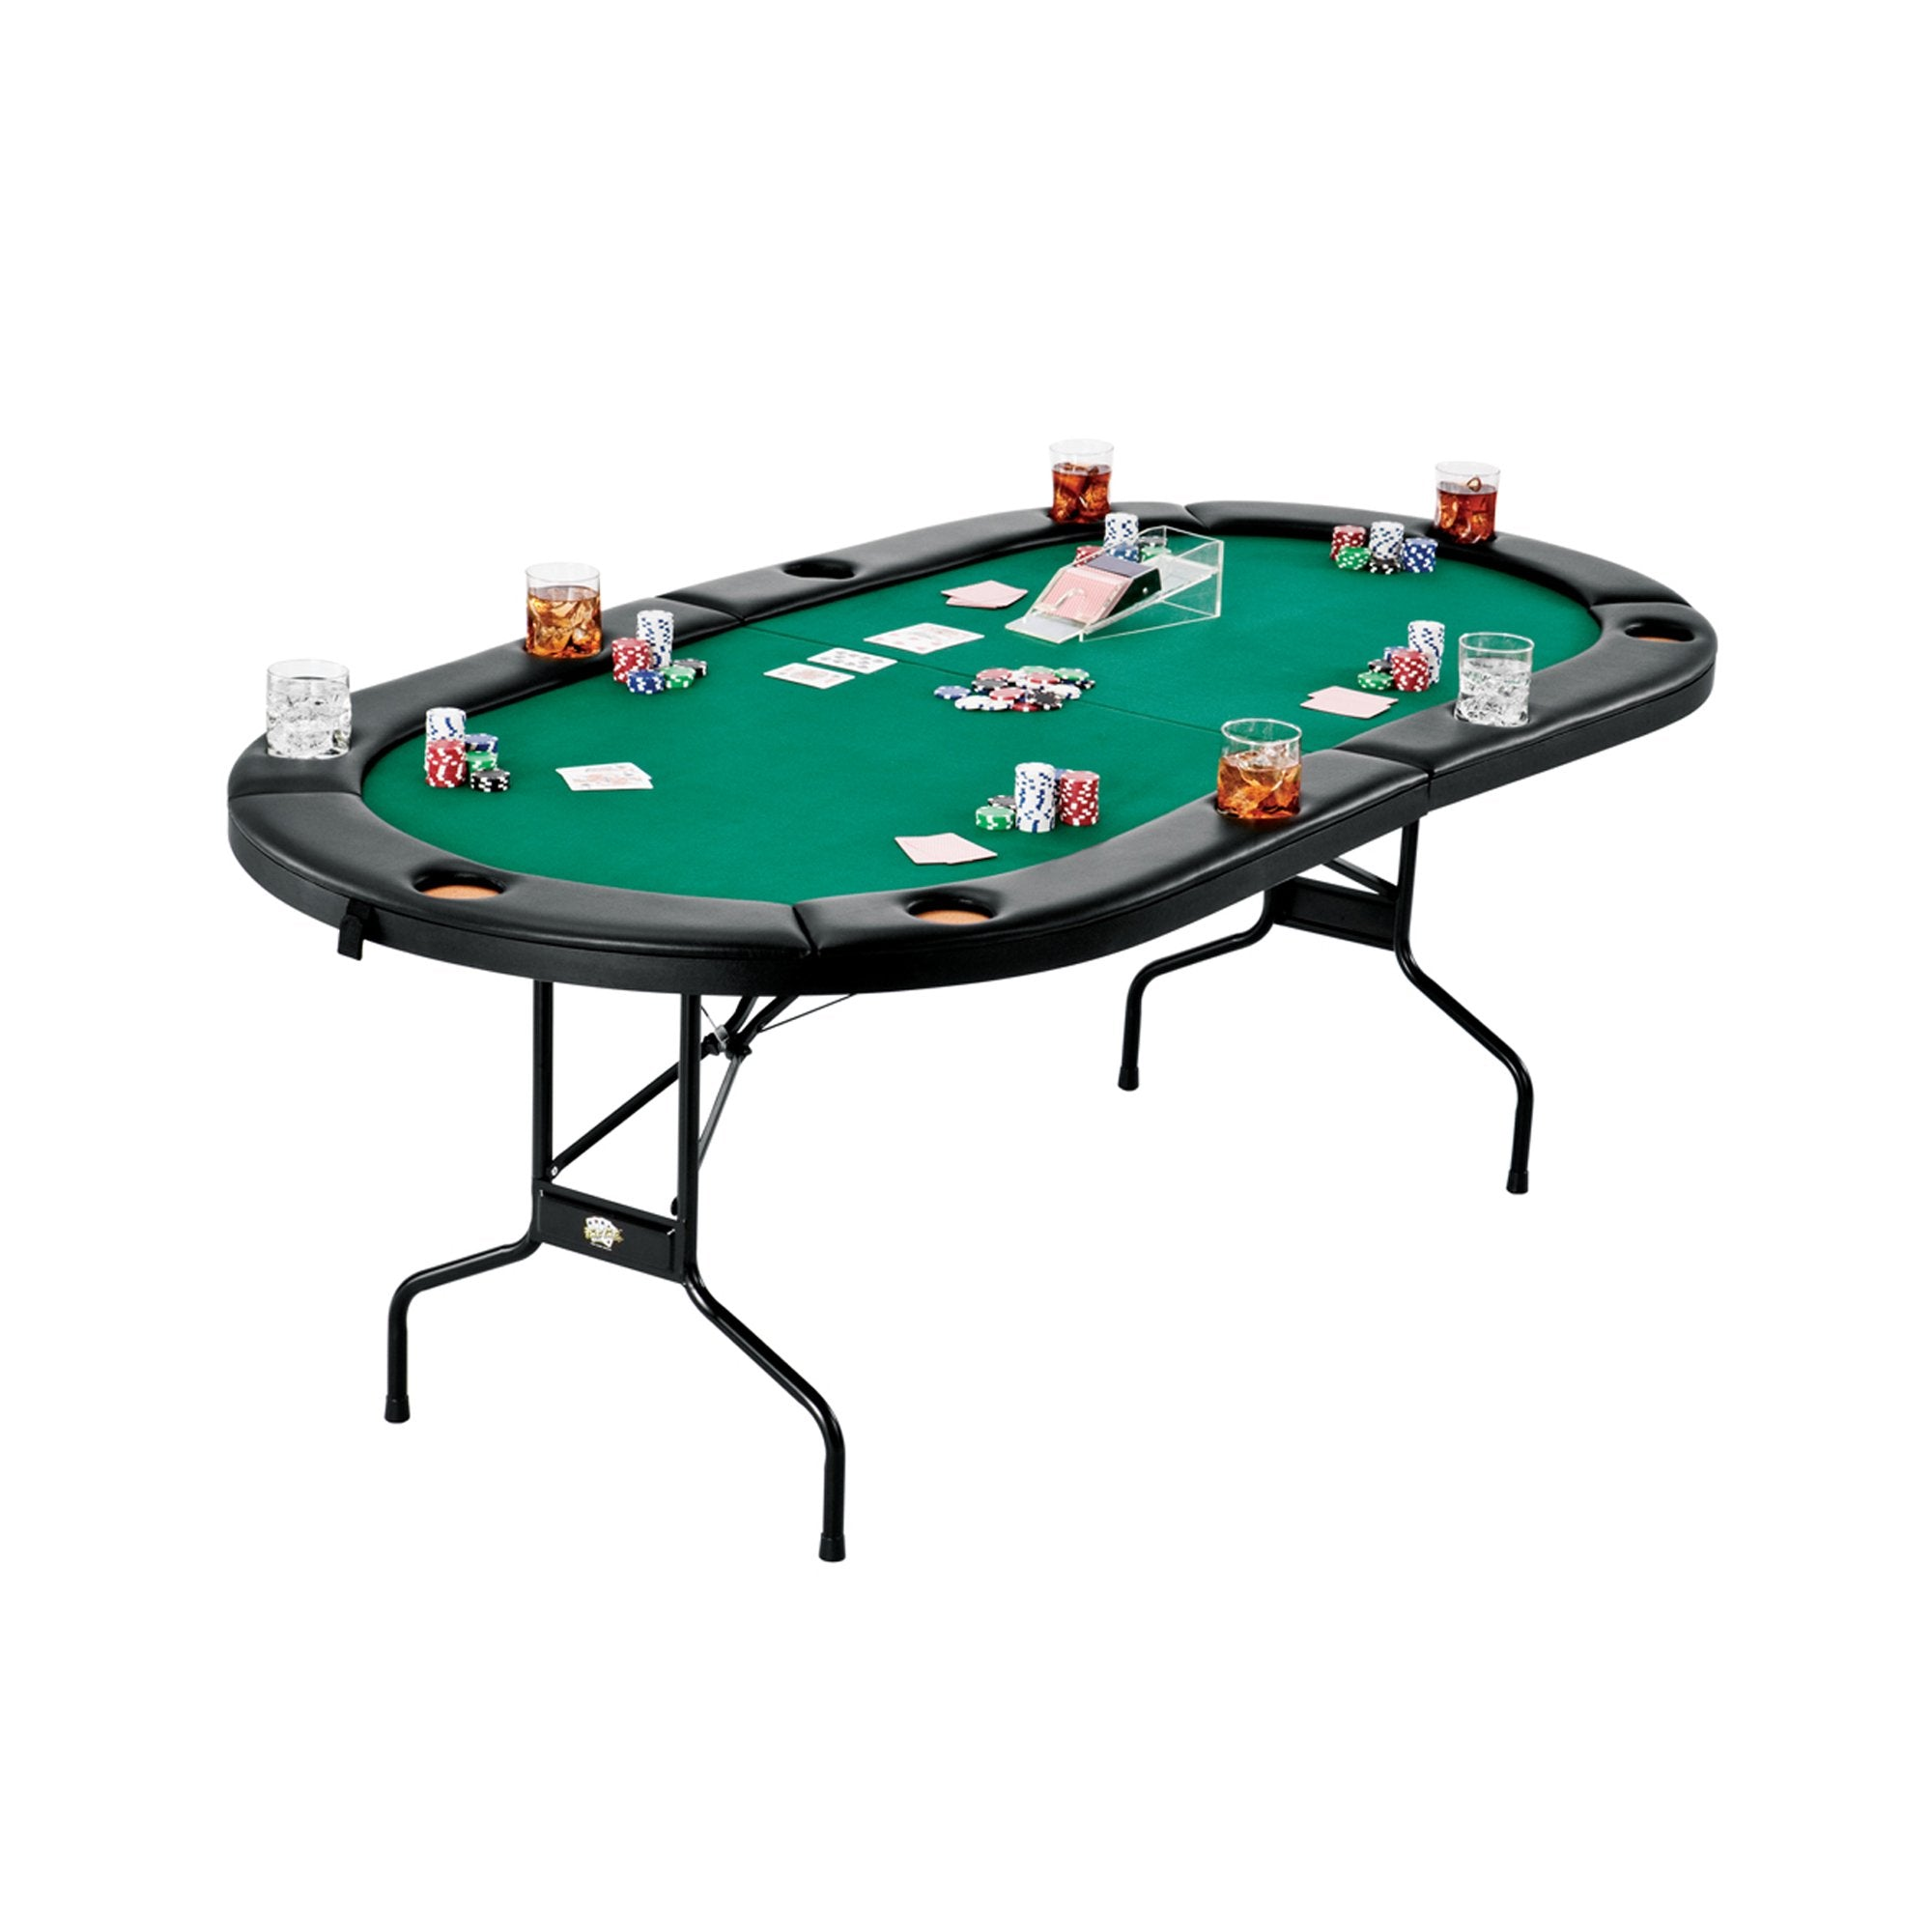 "Fat Cat Texas Holdem 84"" Folding Poker Table - Gaming Blaze"